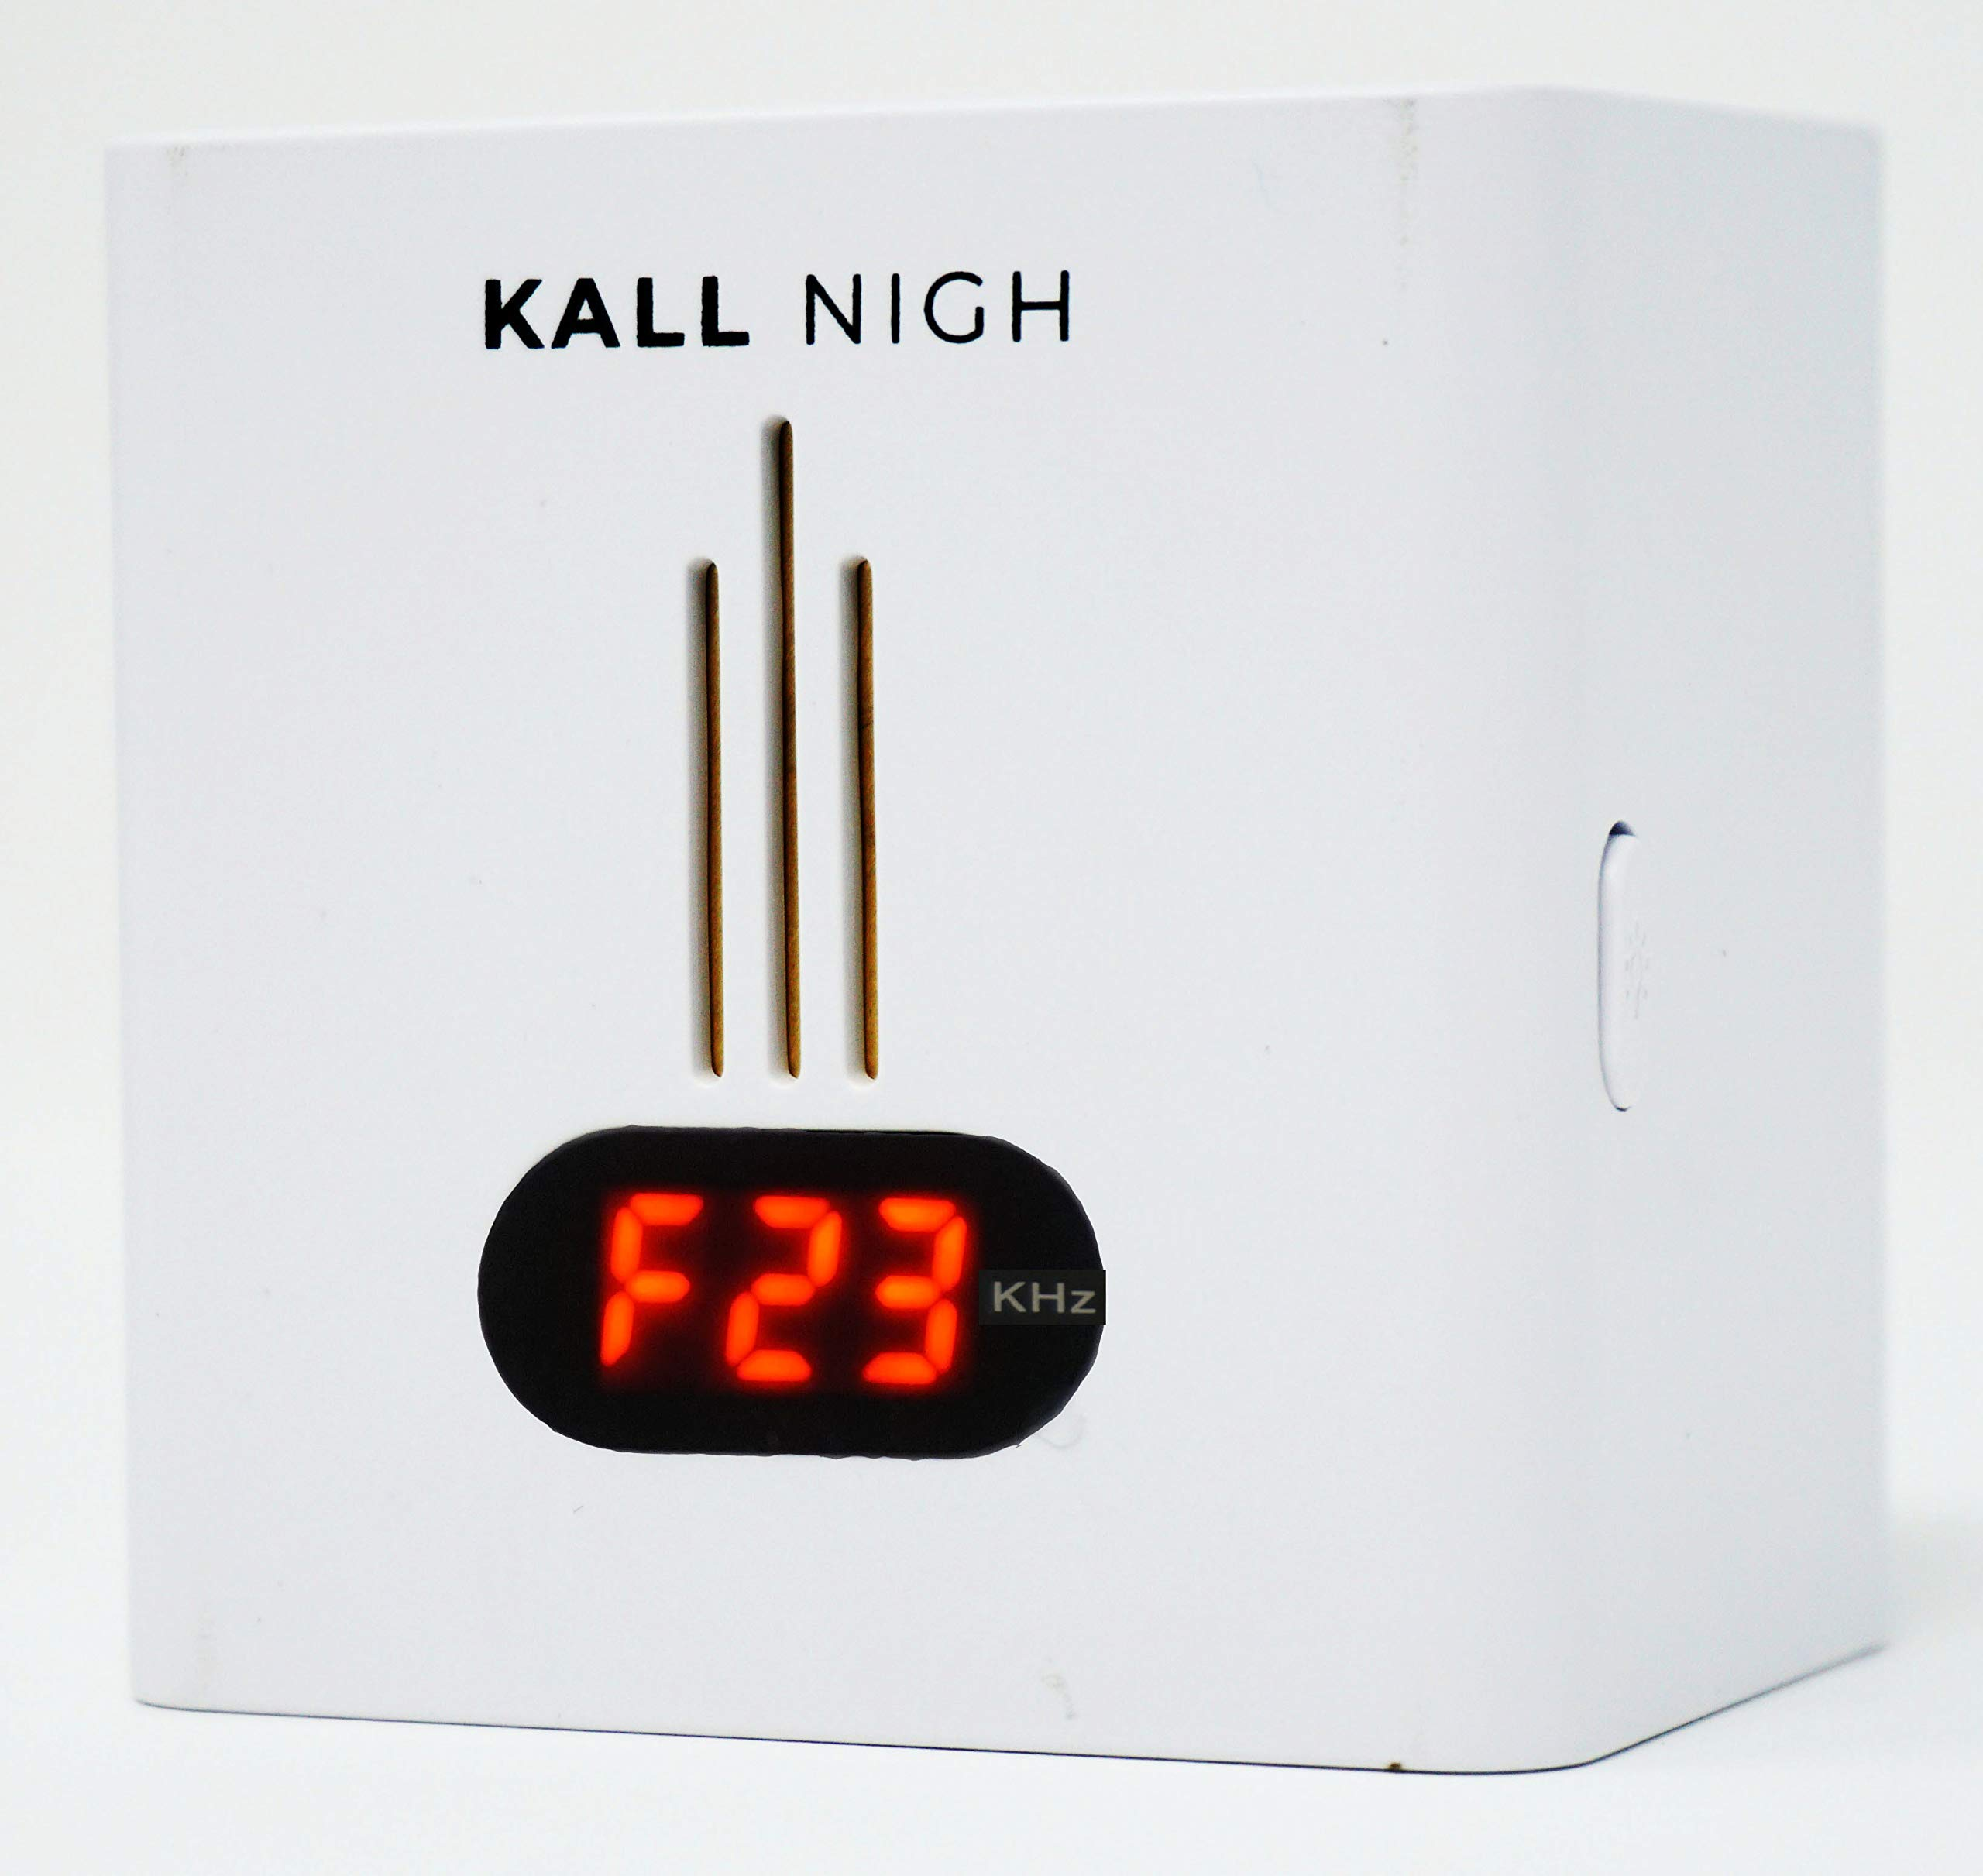 Night Pest Repellent Plug-In, Ultrasonic Repeller Night Light, Electromagnetic, Electronics Rejects Bugs, Insects, Cockroaches, Wasps, Other Small Creatures - Small, Safe, Quiet by KALL Nigh